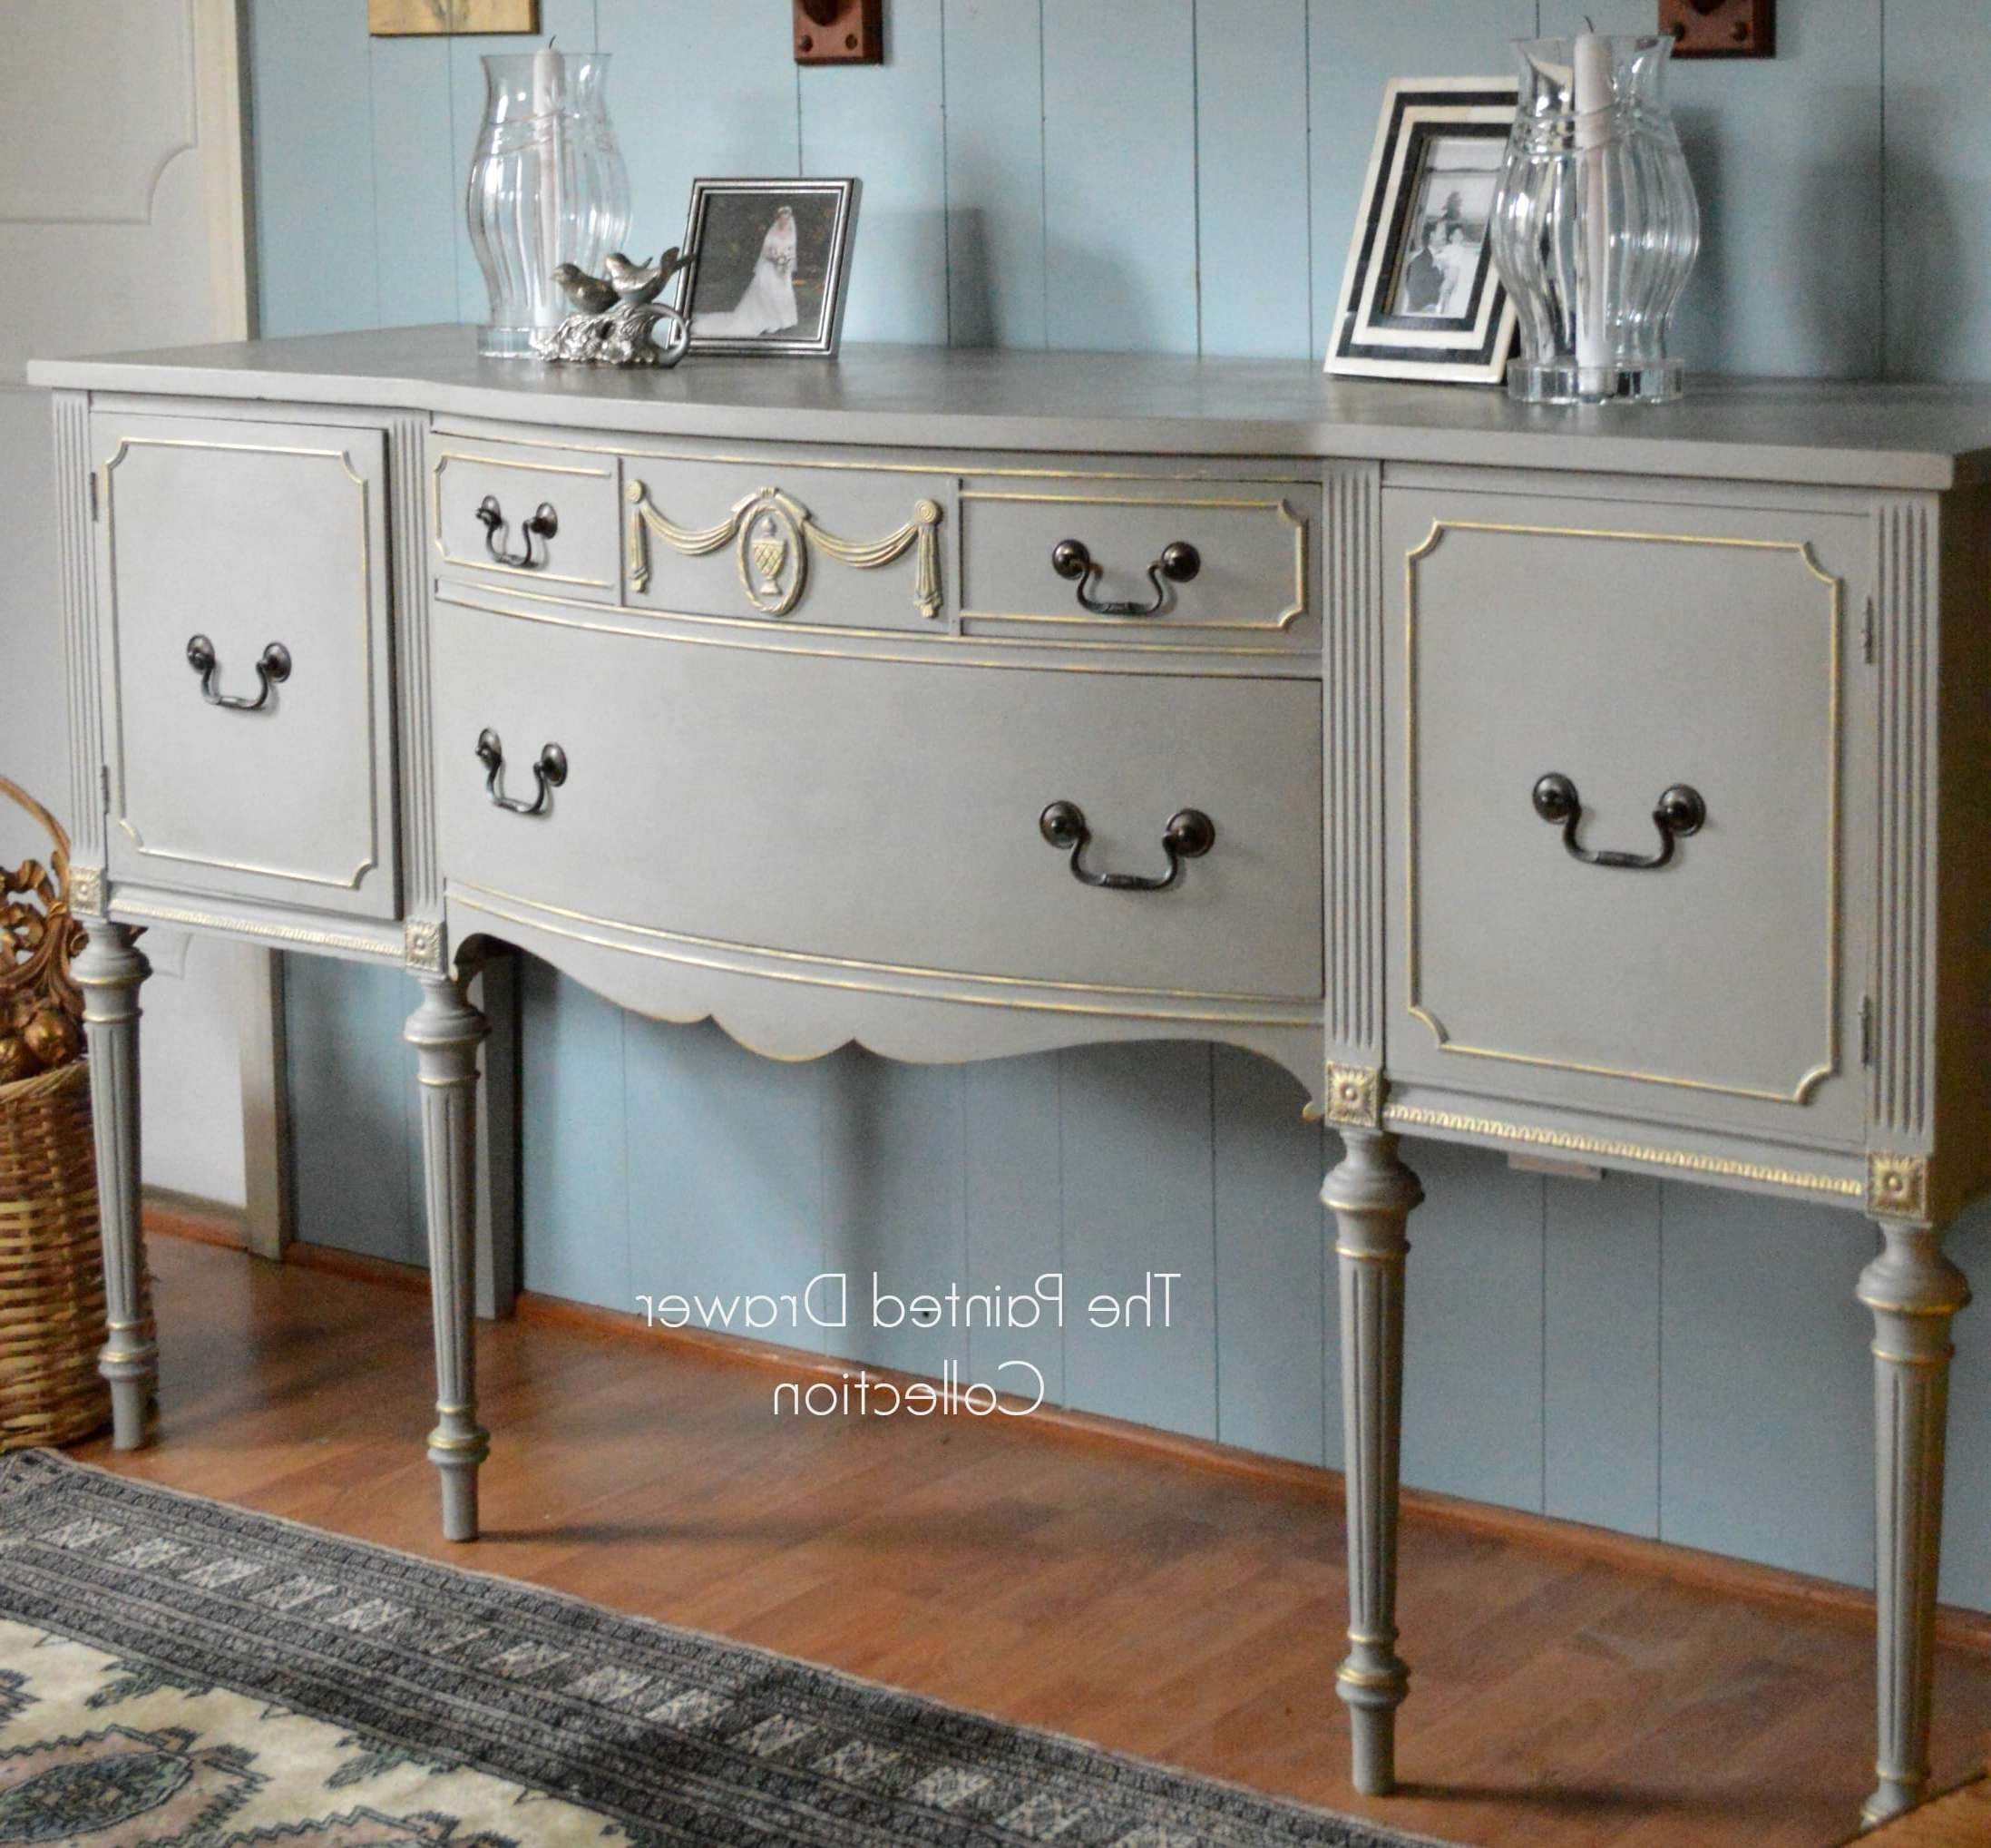 French Linen And Gold Sideboard Transformation – Before And After – Throughout Annie Sloan Painted Sideboards (View 4 of 20)